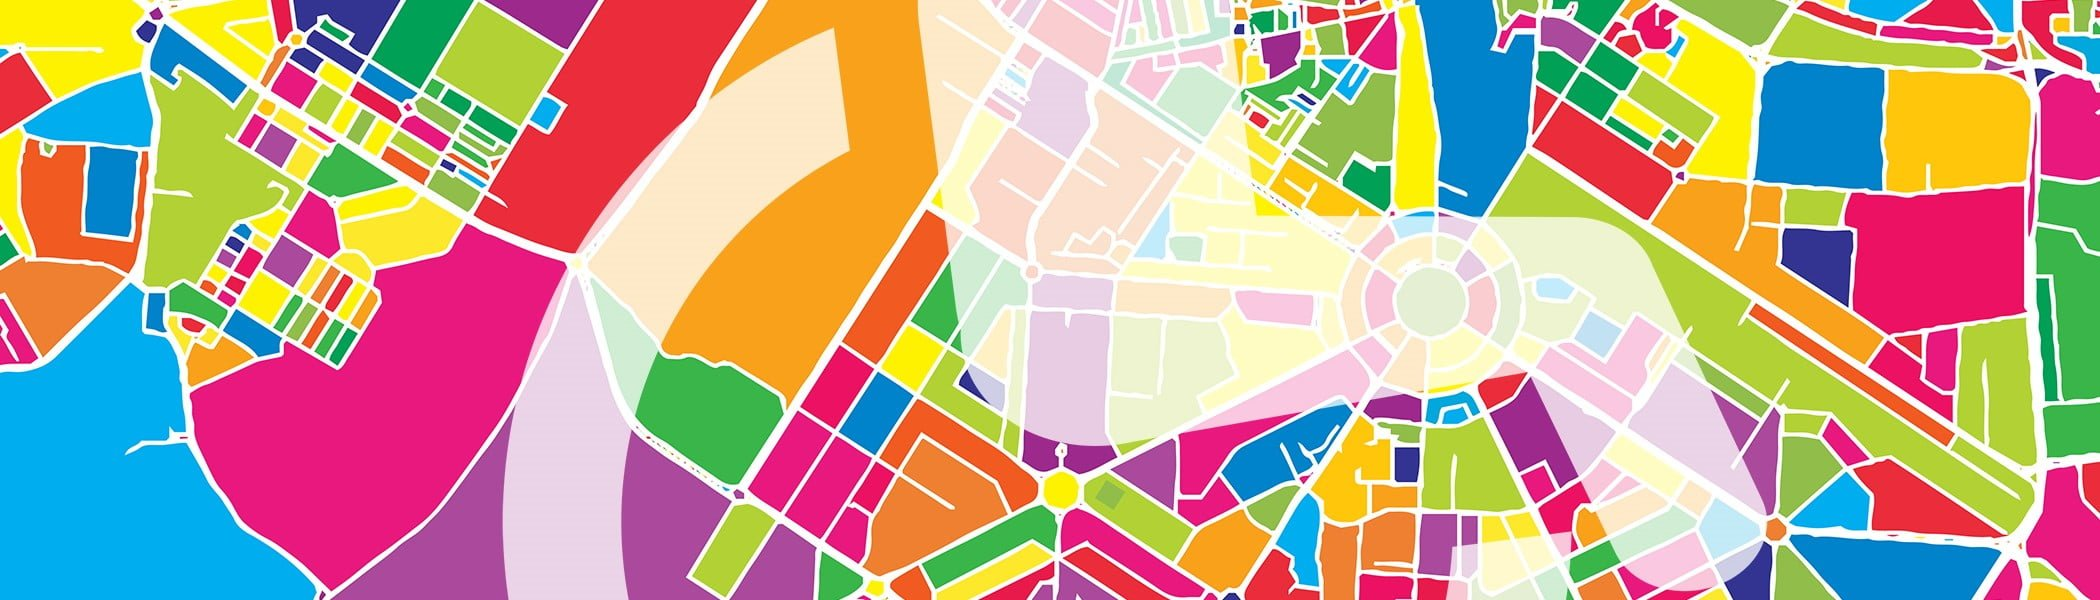 New Delhi aerial map view in colorful colors